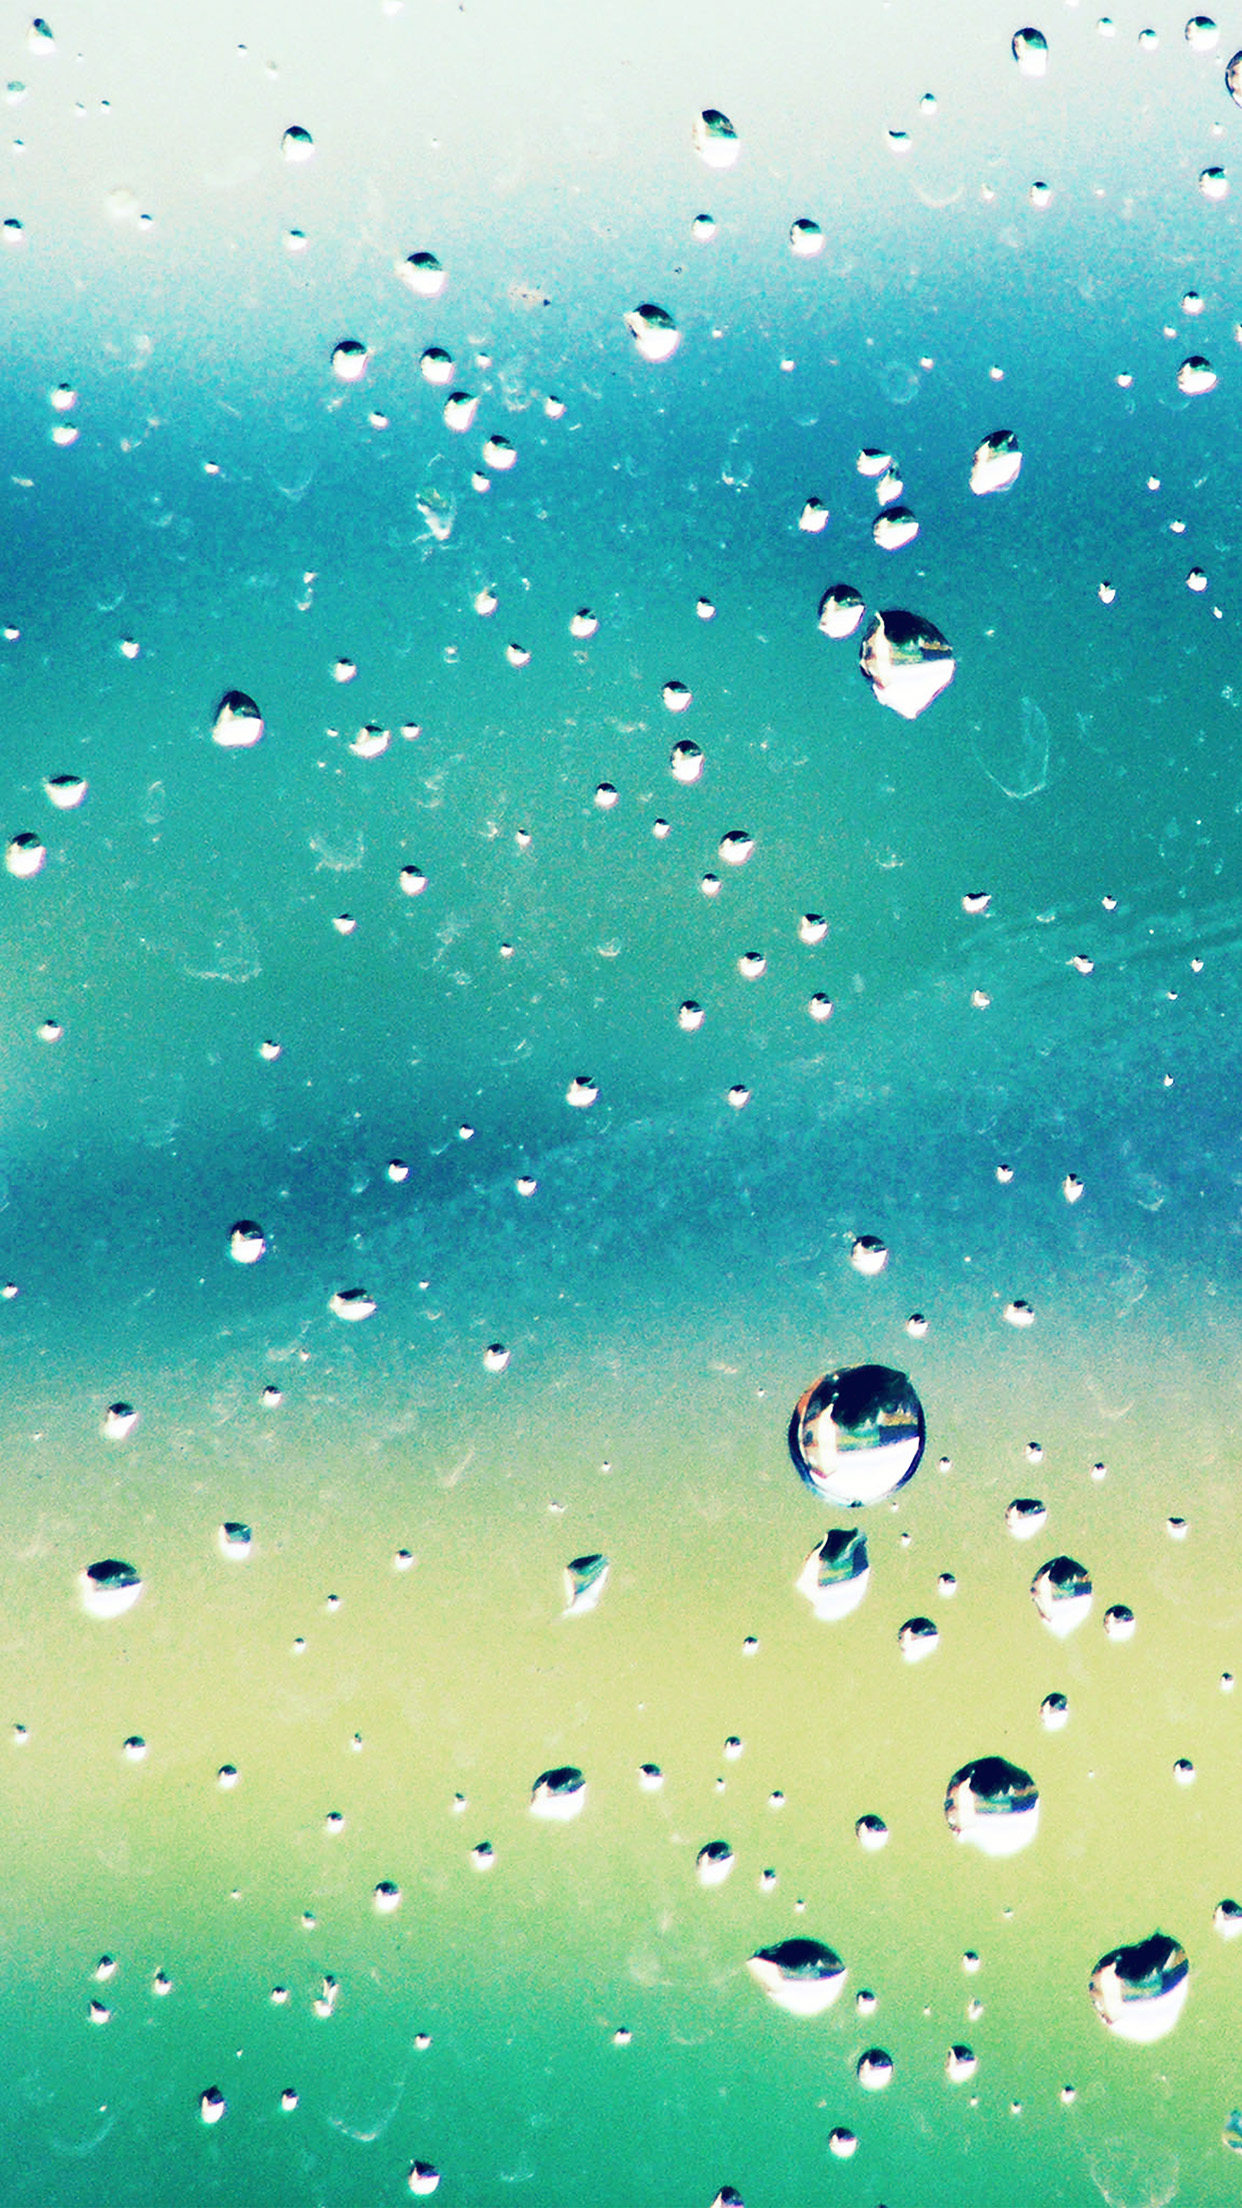 Iphone6papers Com Iphone 6 Wallpaper Mt67 Rainy Day Blue